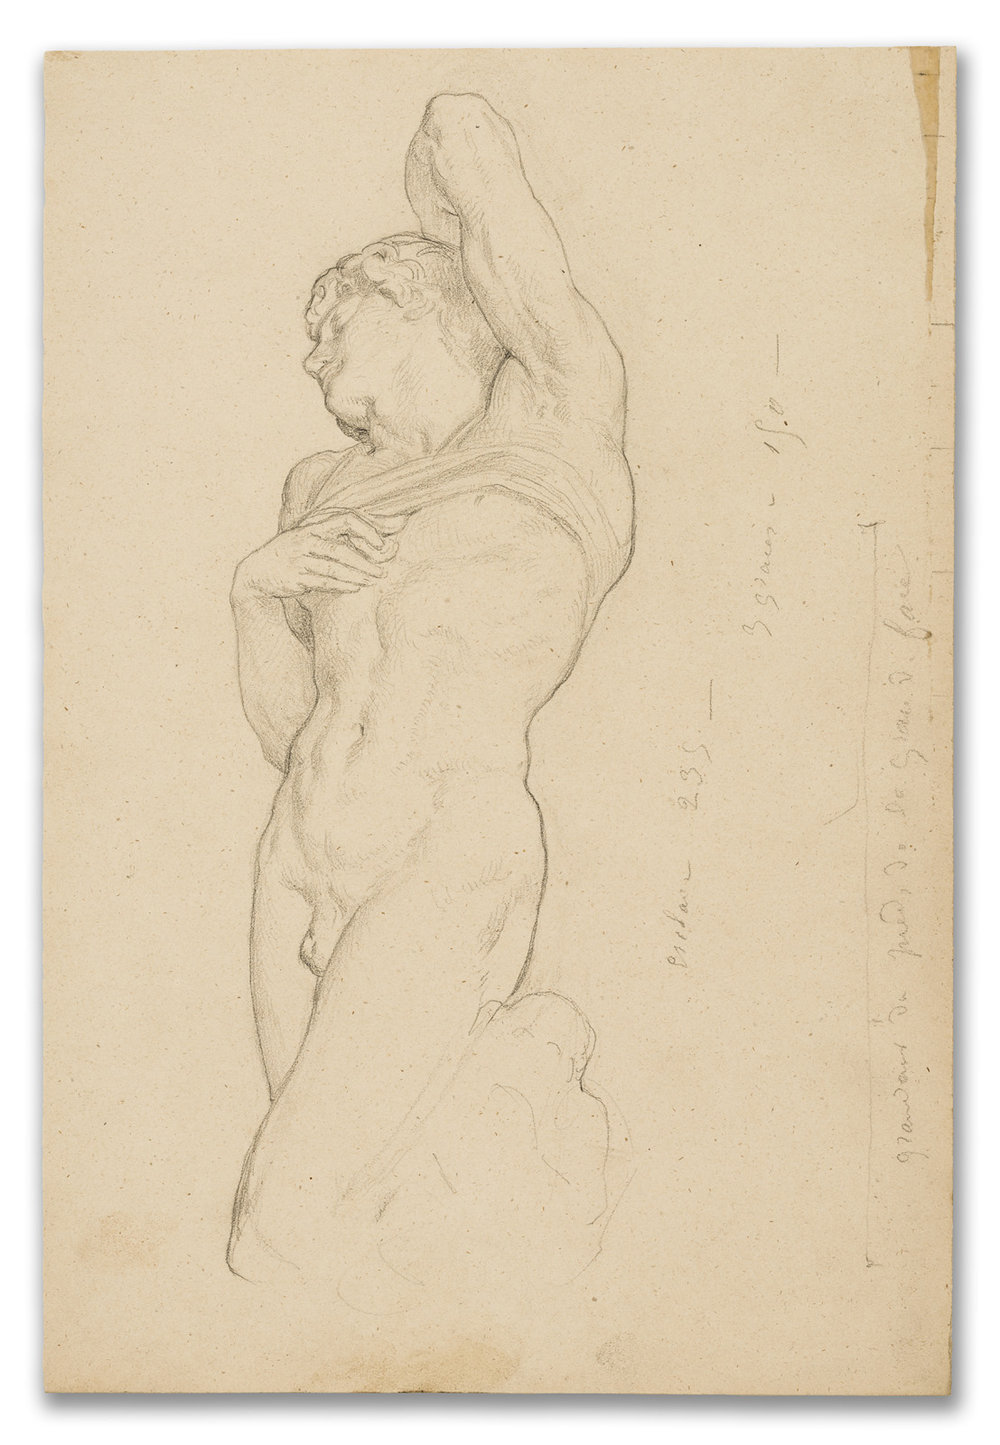 Charles Louis Muller, (French 1815-1892), Academic Study after Michelangelo, 19th Century.